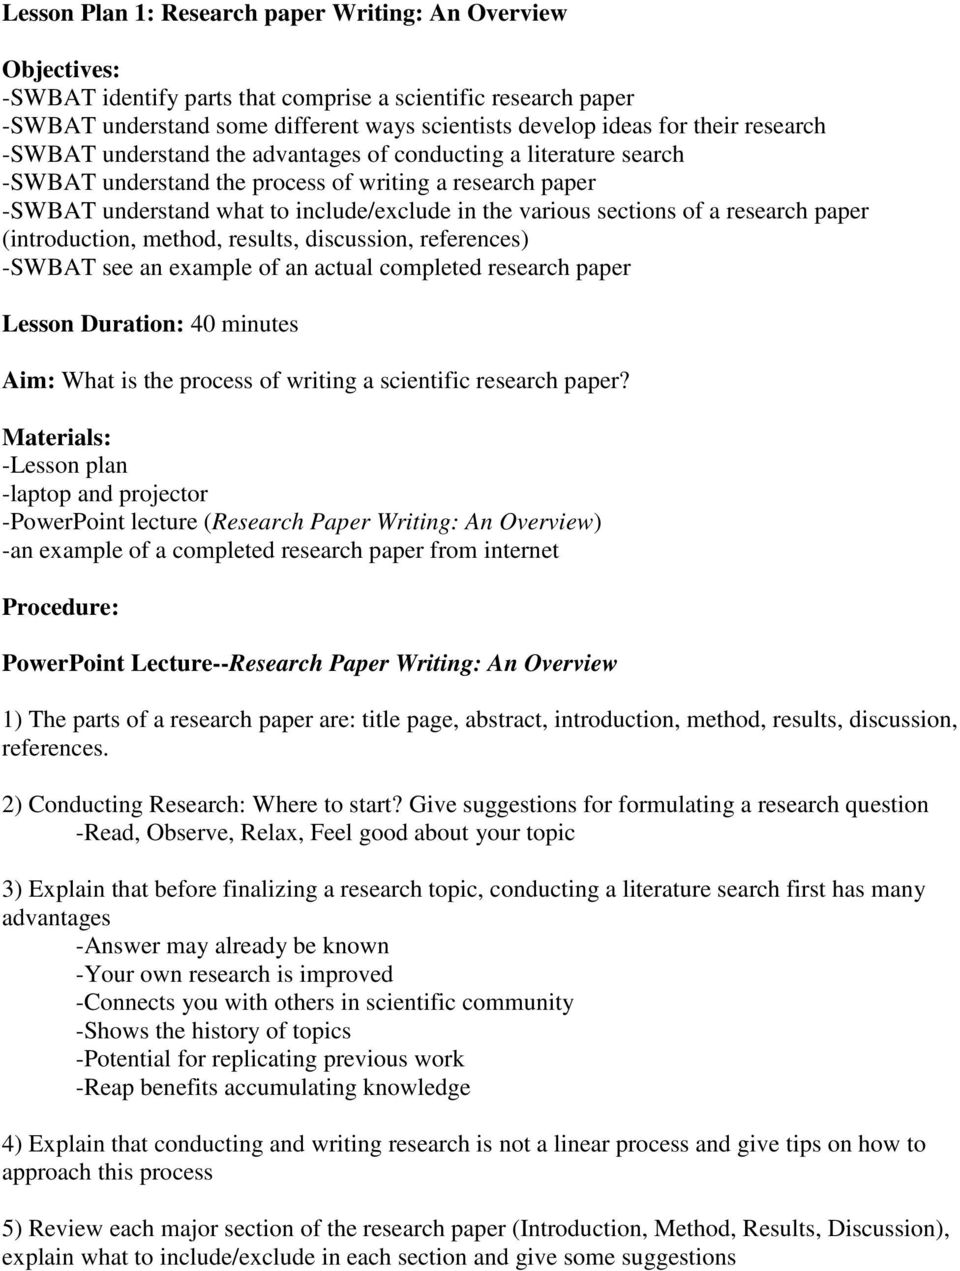 006 Page 1 Research Paper How To Write Results And Discussion Surprising In A Example Section Of Apa The Ppt Full